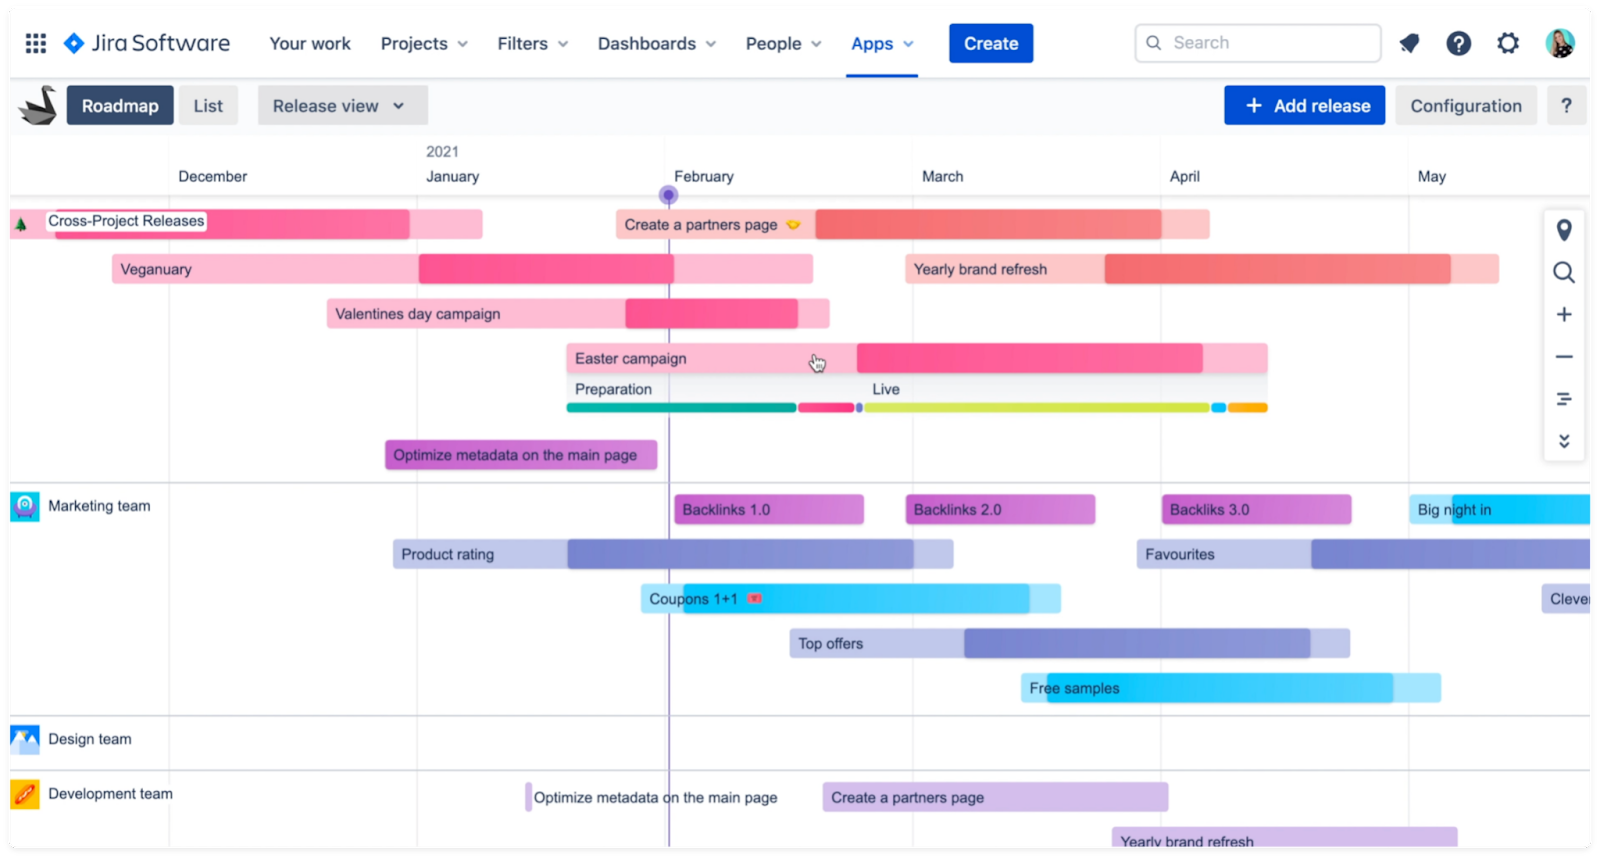 Swanly Jira roadmap timeline with cross-project releases